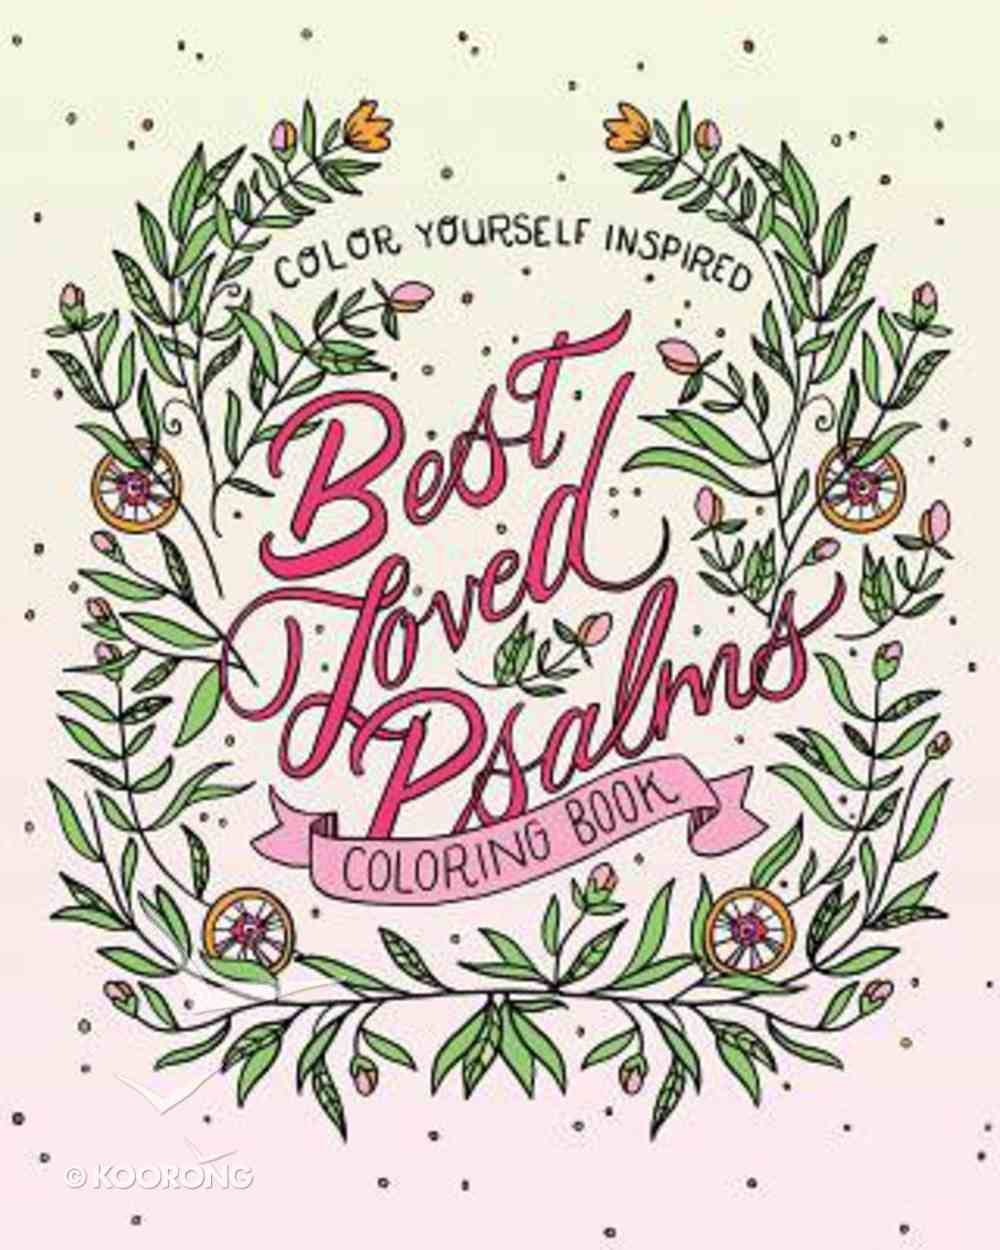 Best Loved Psalms Coloring Book (Adult Coloring Books Series) Paperback